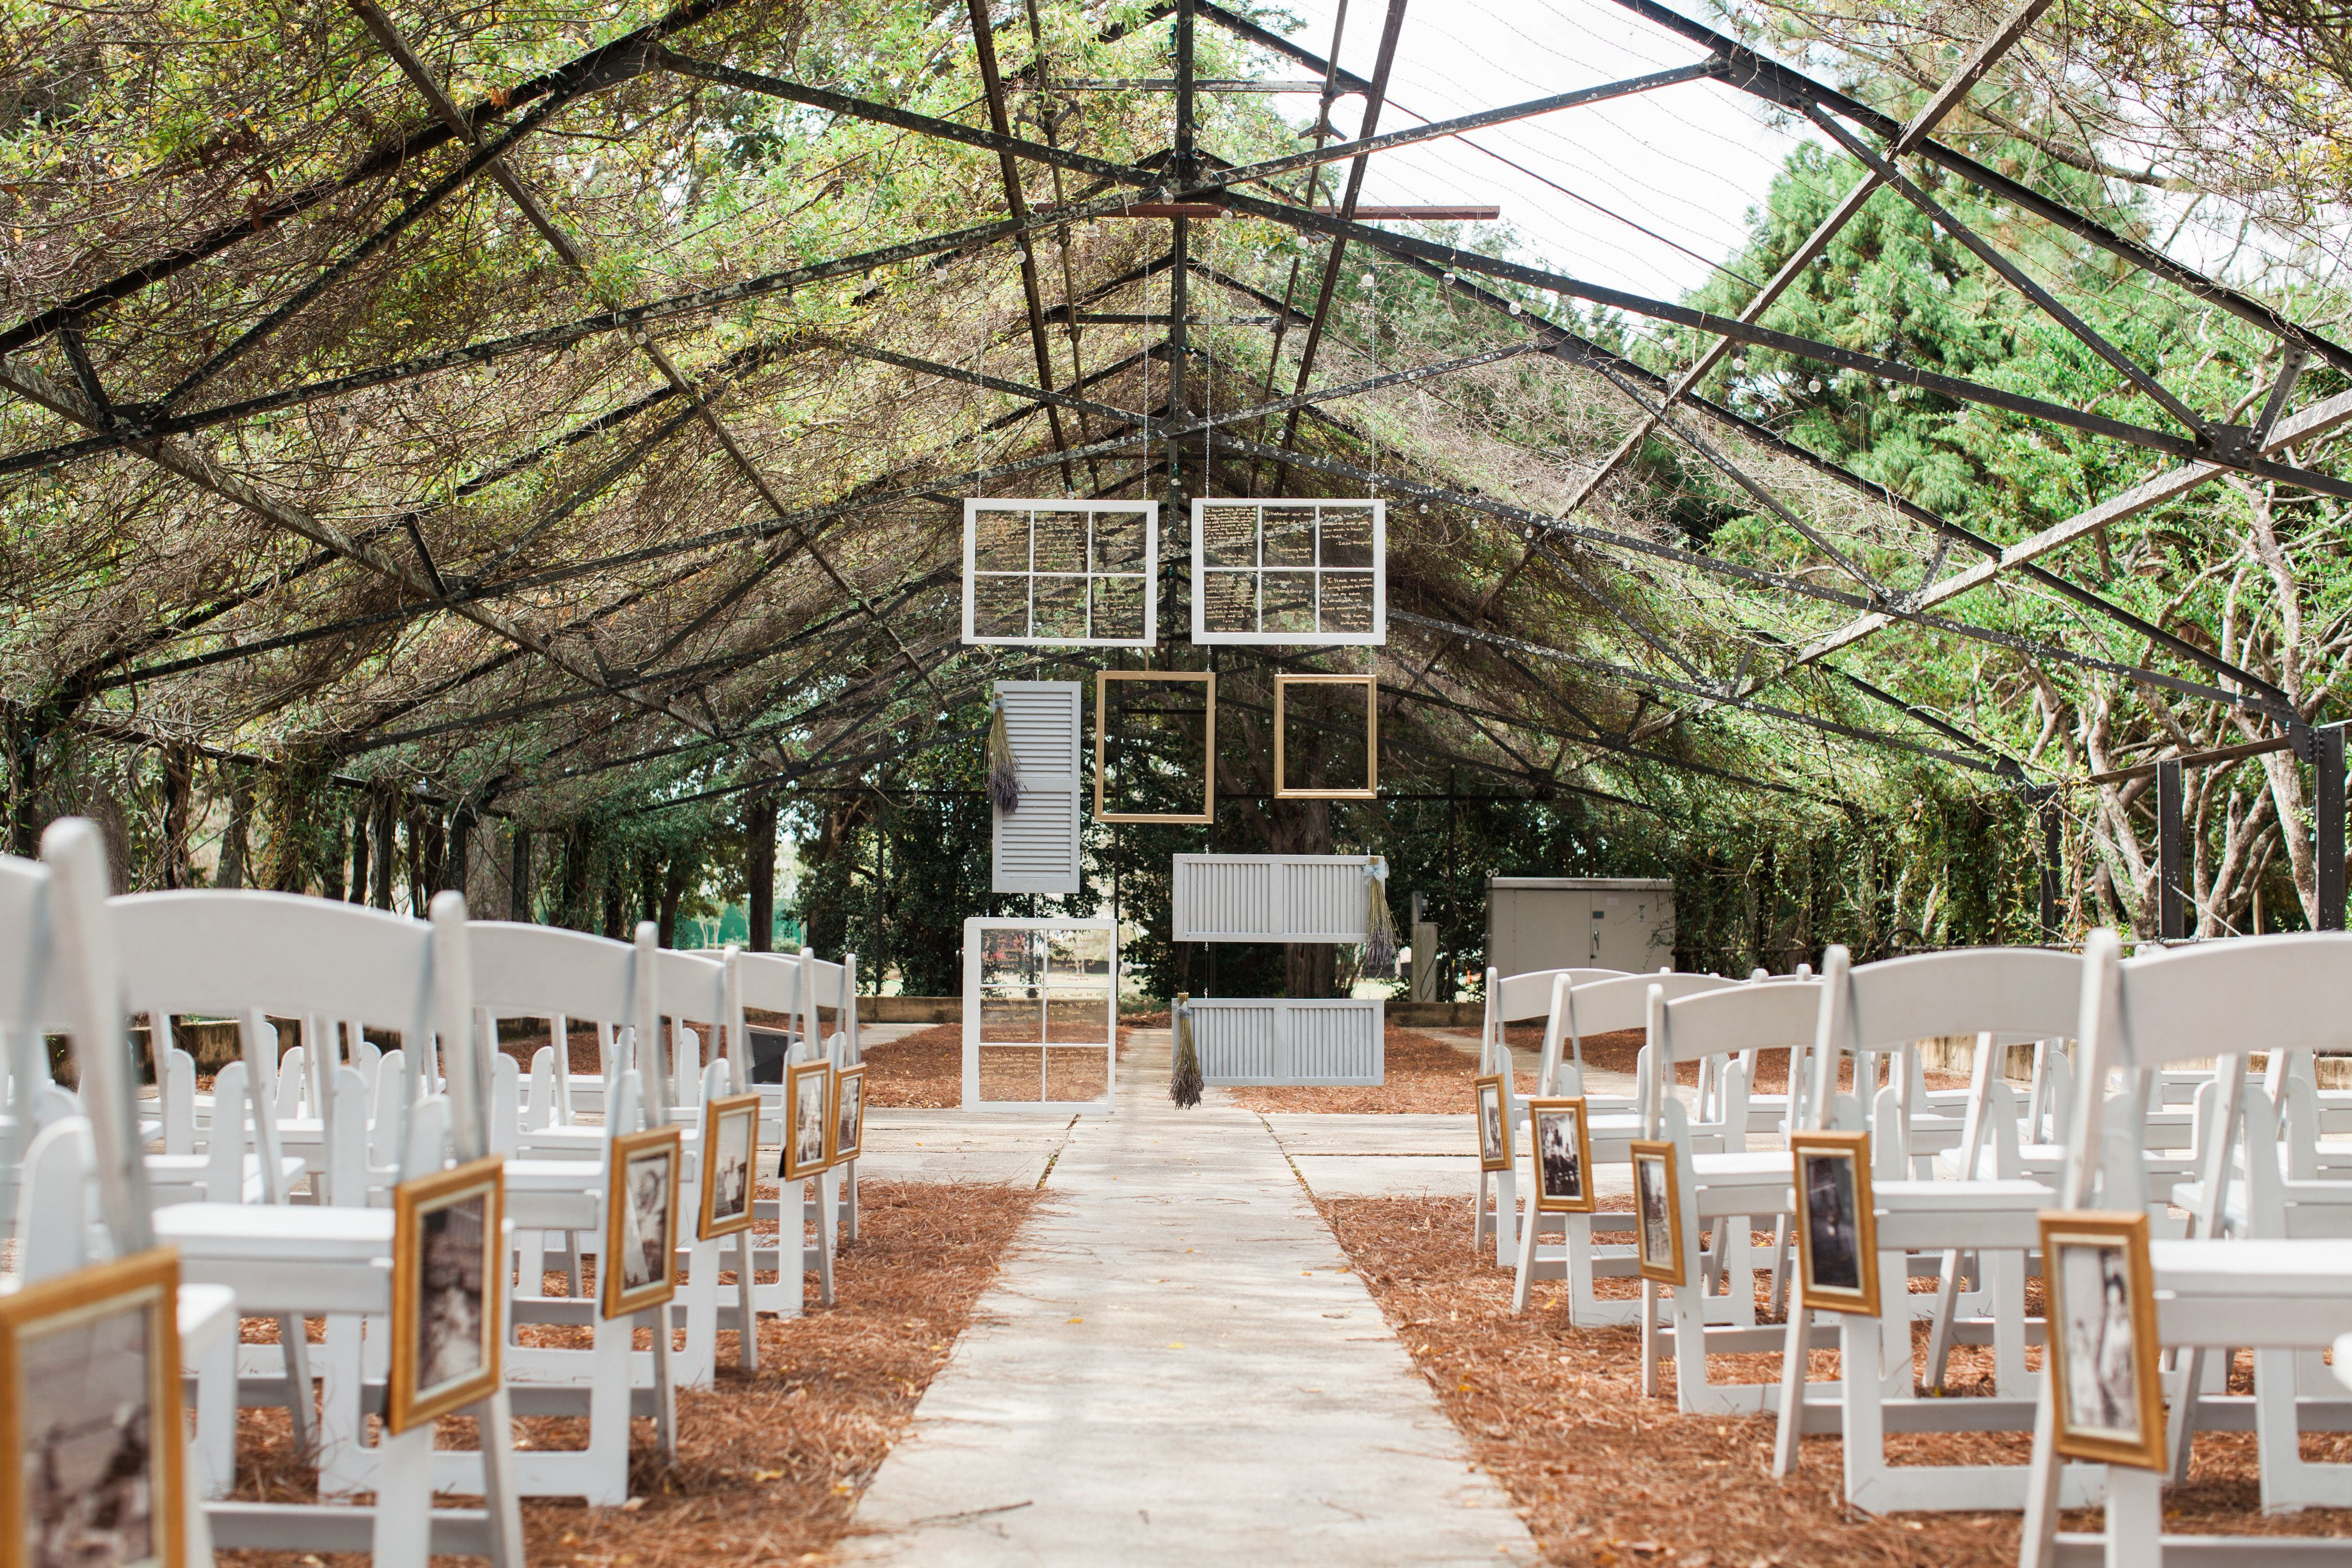 Diy wedding alter with old windows and shutters wedding